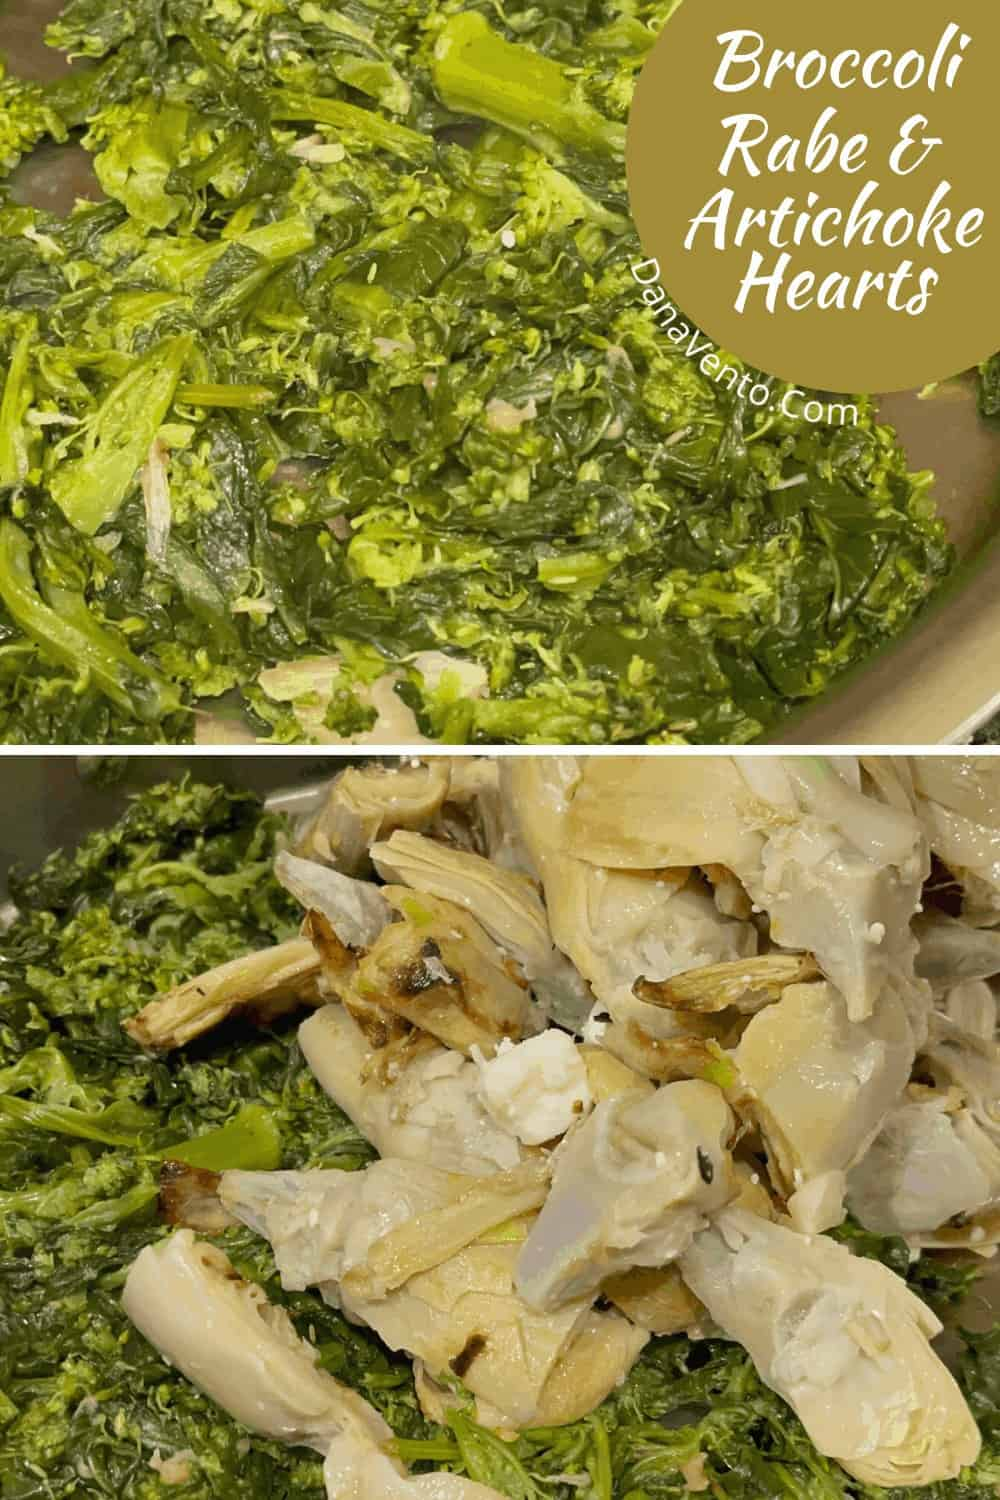 Broccoli Rabe cooked and Artichoke Hearts with Feta